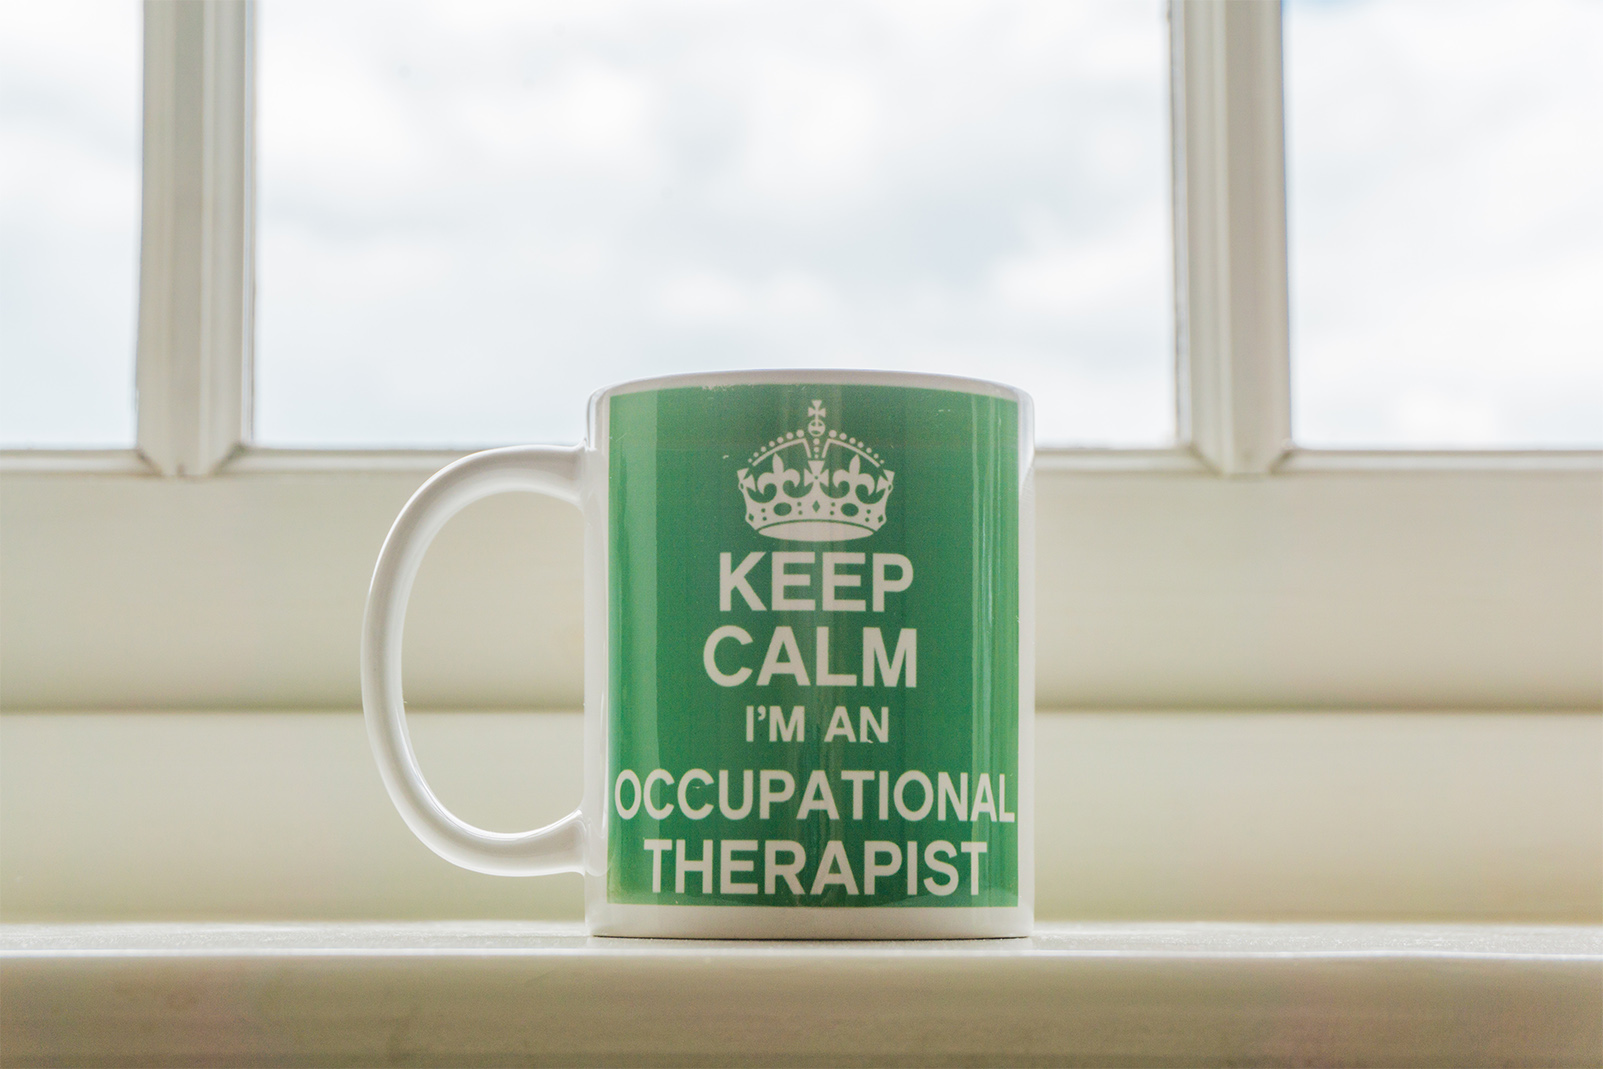 Can phd change the world? Occupational Therapist mug says yes!